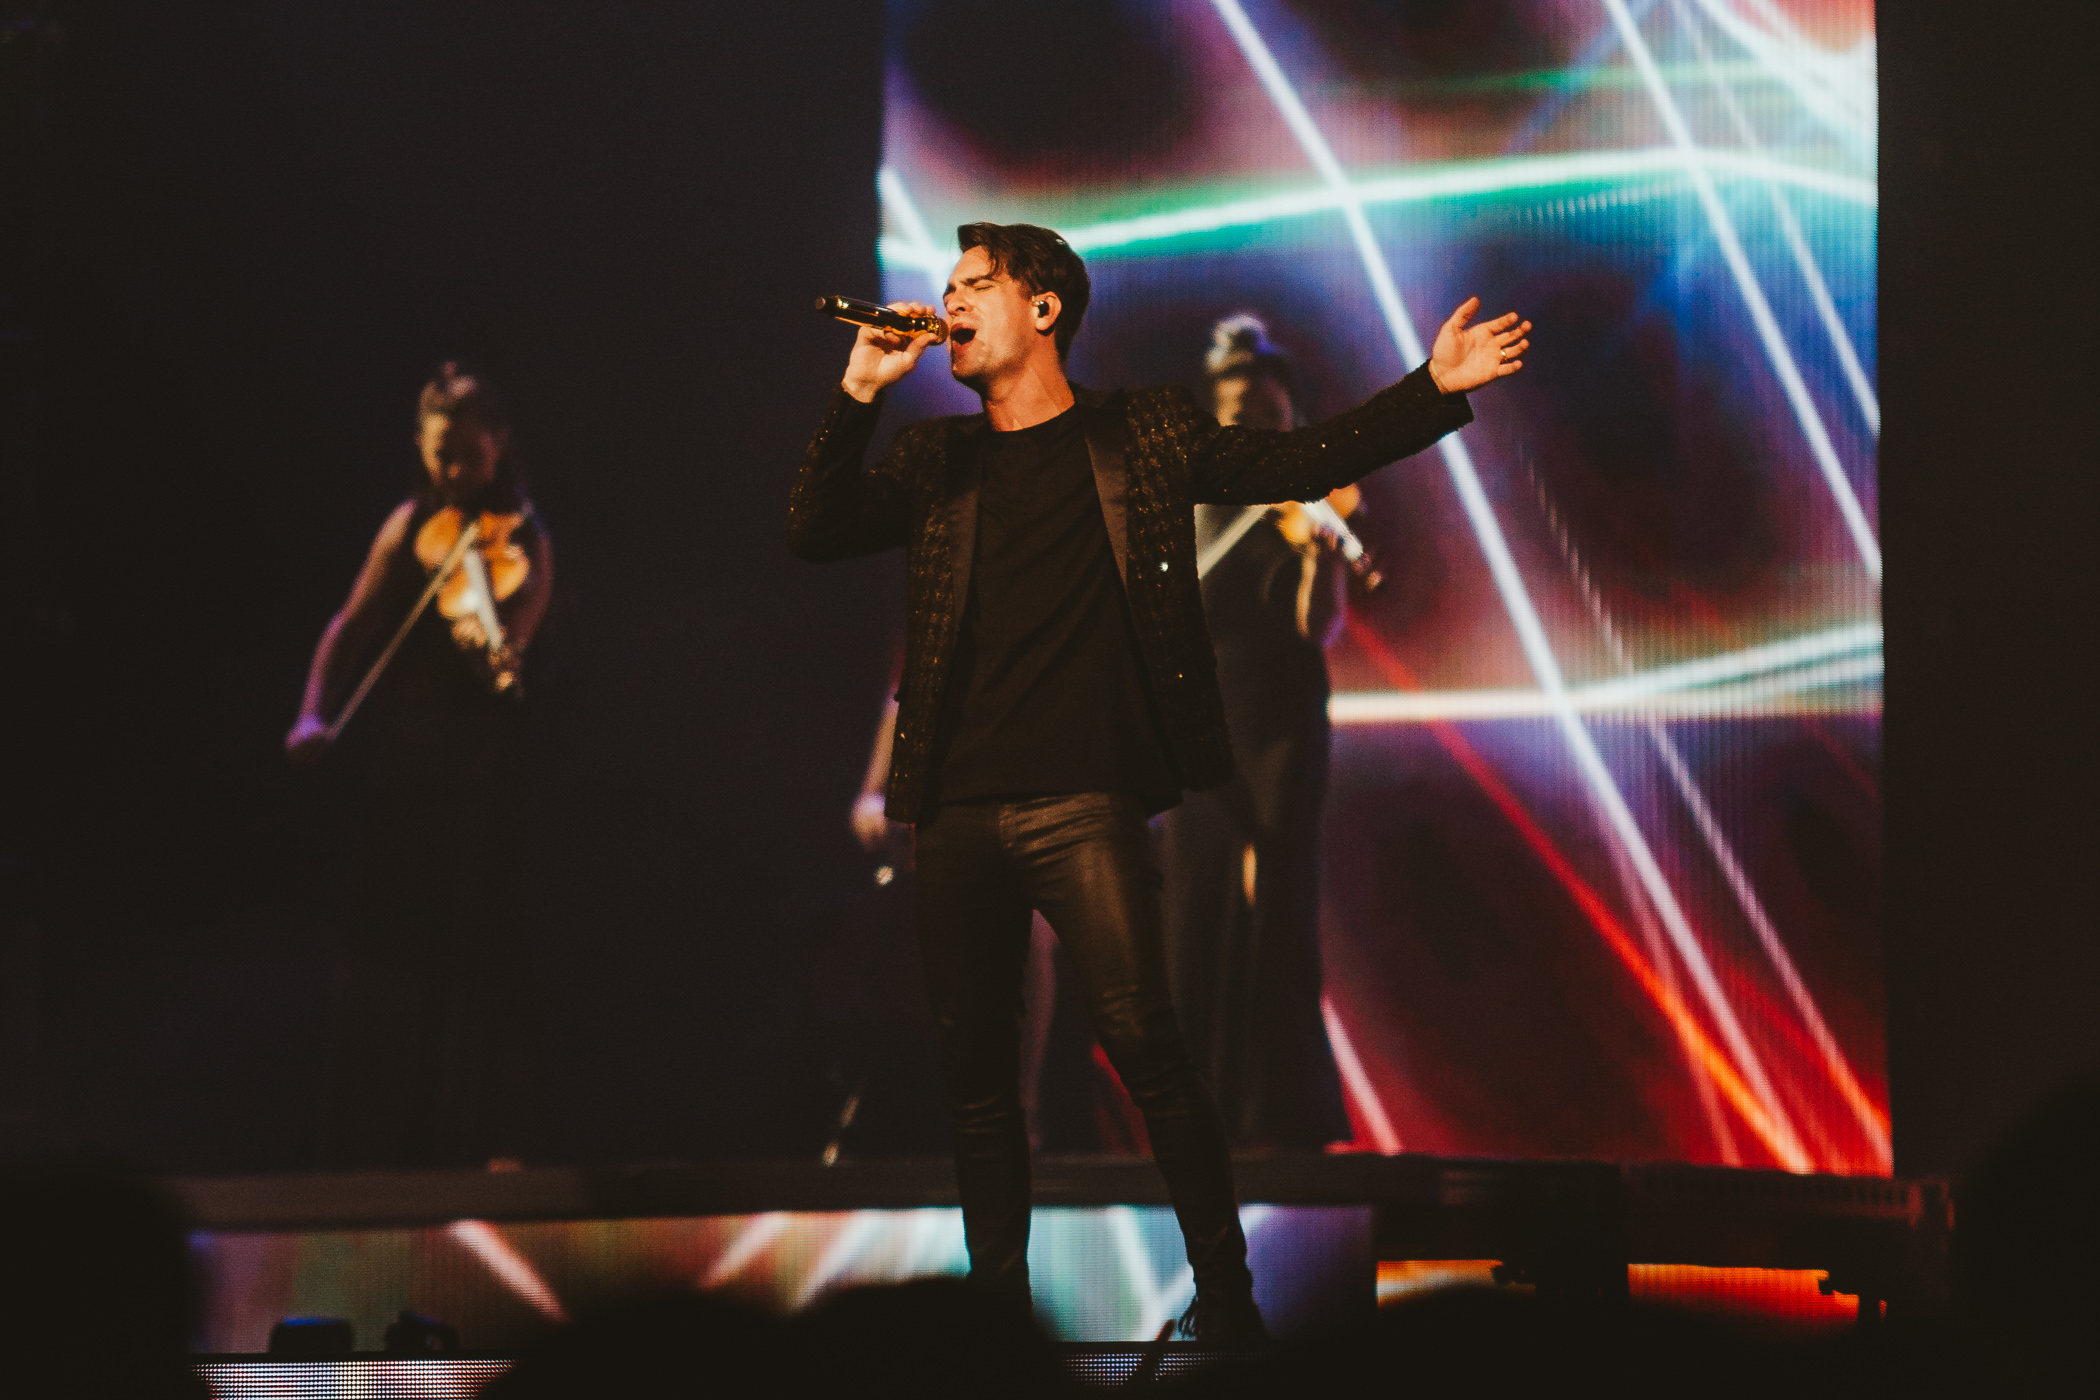 1_Panic!_At_The_Disco-Rogers_Arena-Timothy_Nguyen-20180811-11.jpg